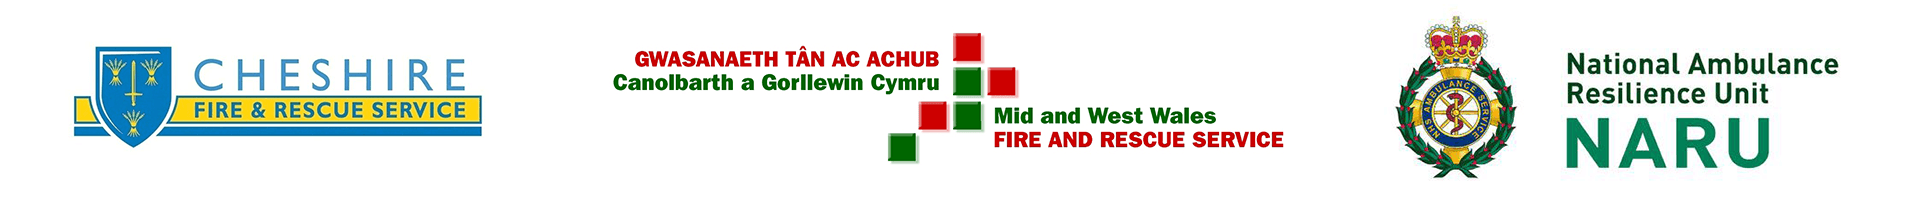 Sky-Futures Drone Training Customer References - Cheshire Fire & Rescue Service Mid and West Wales Fire and Rescue Service National Resilience Unit NARU